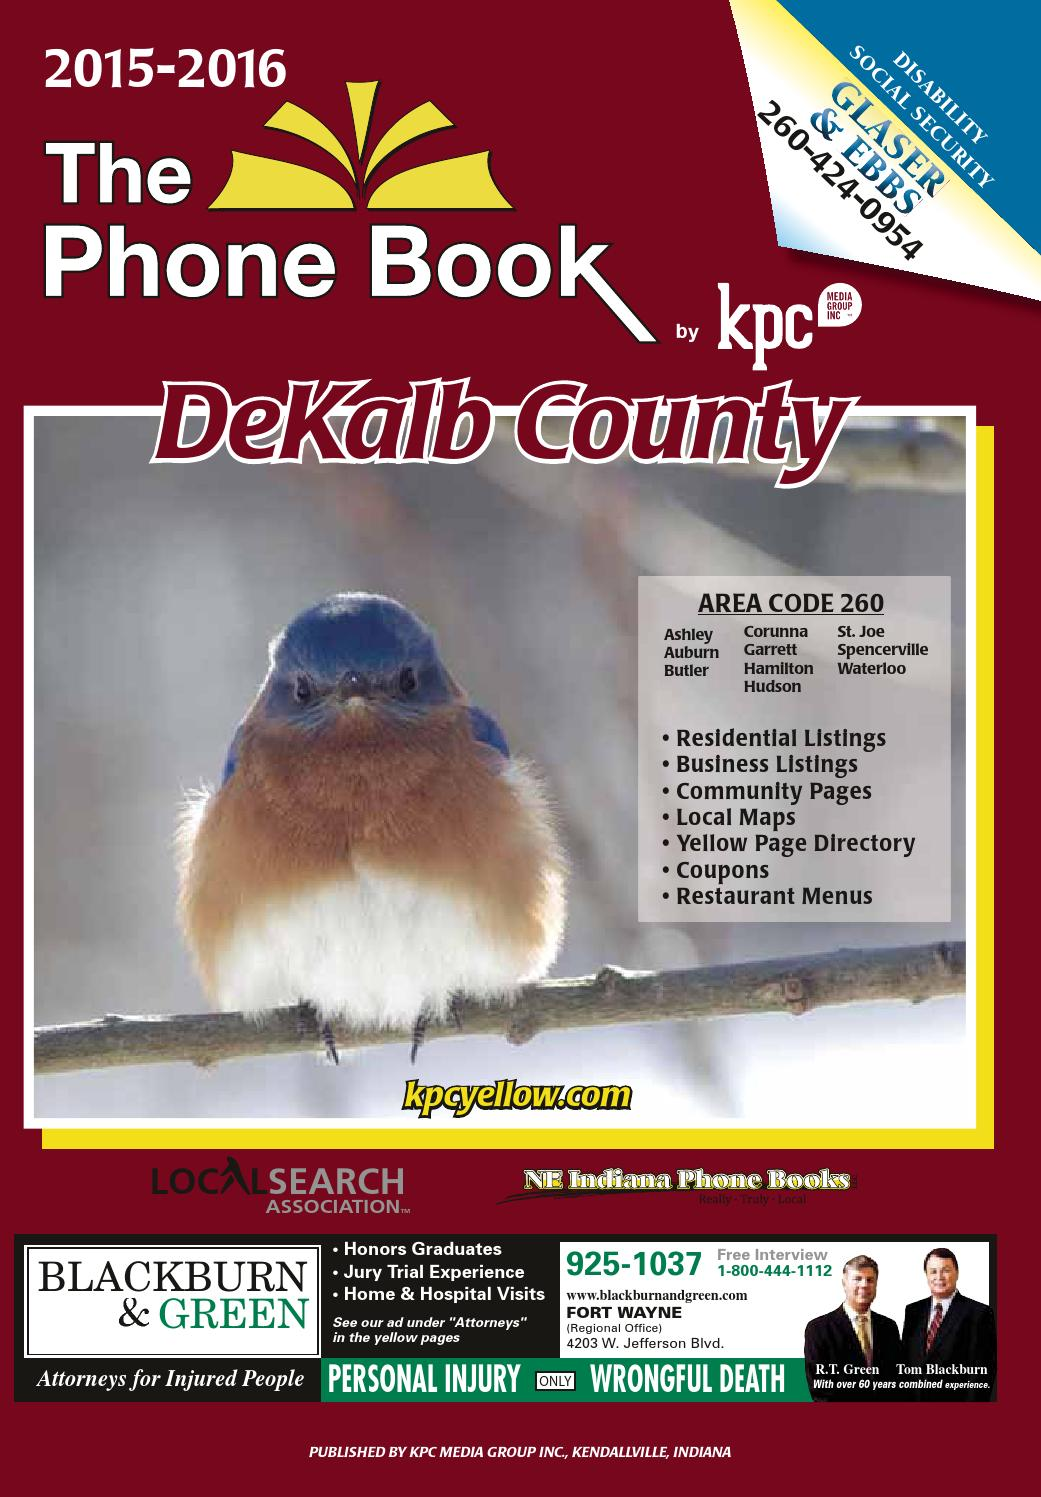 Dekalb County Yellow Pages 2015 By Kpc Media Group Issuu Circuit Board With Space For Text Gl Stock Images